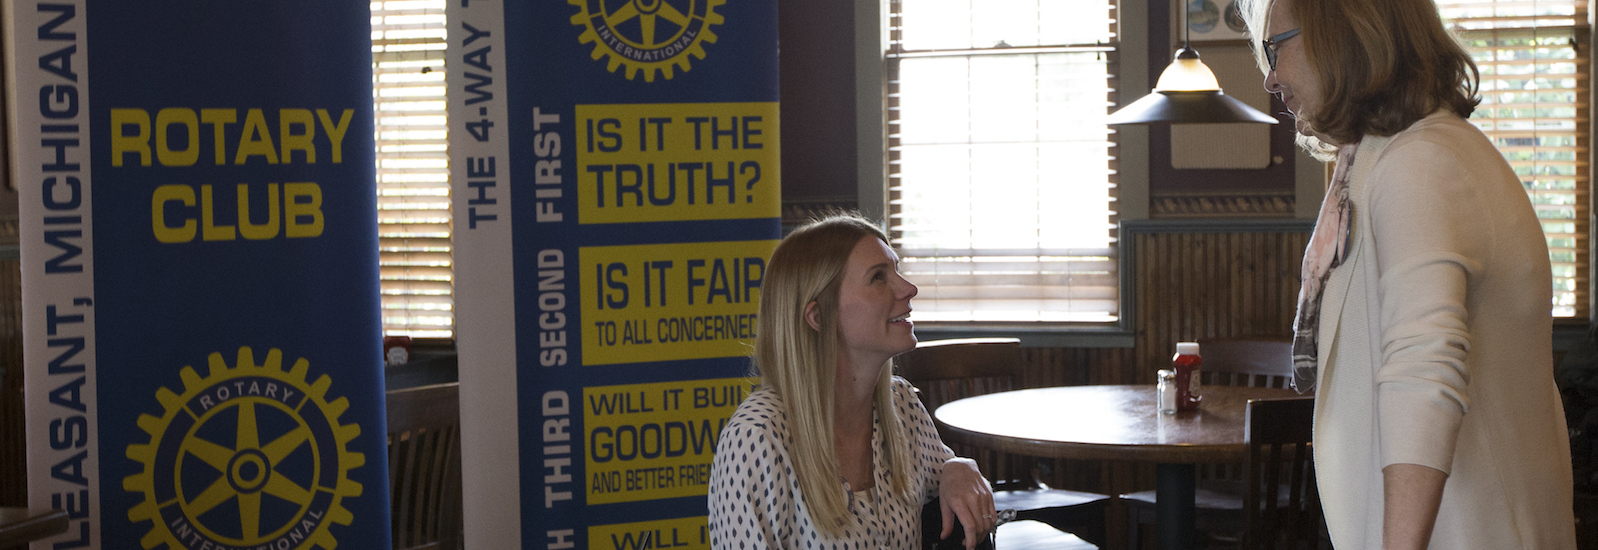 Mt. Pleasant Rotary Club President Alysha Fisher and Peggy Pickler chat prior to the club's meeting at Mountain Town Station on Monday, Oct. 8, 2018. <span class='image-credits'>Liz Whittemore</span>